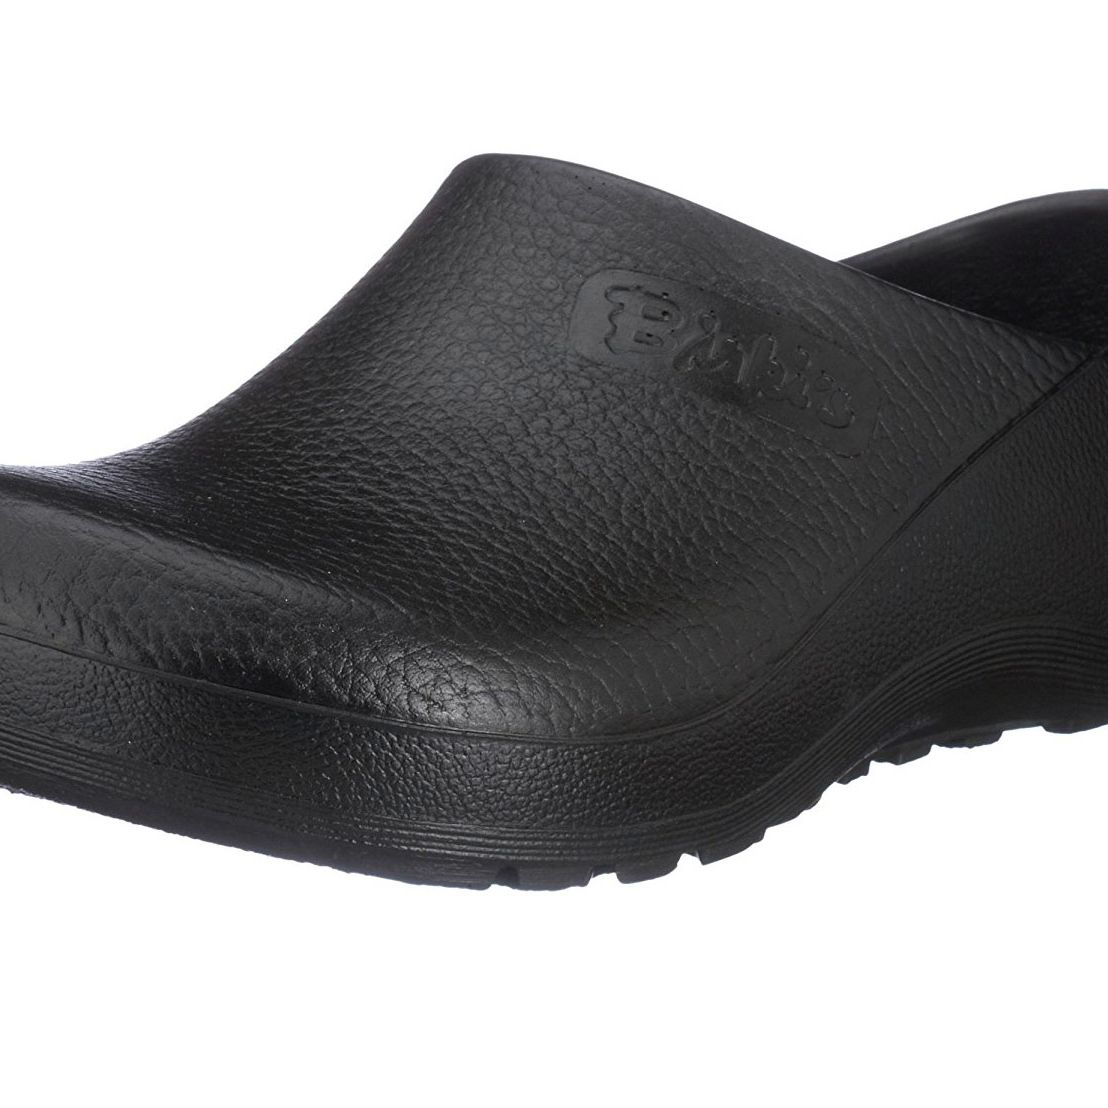 30 Most Comfortable Shoes for Walking